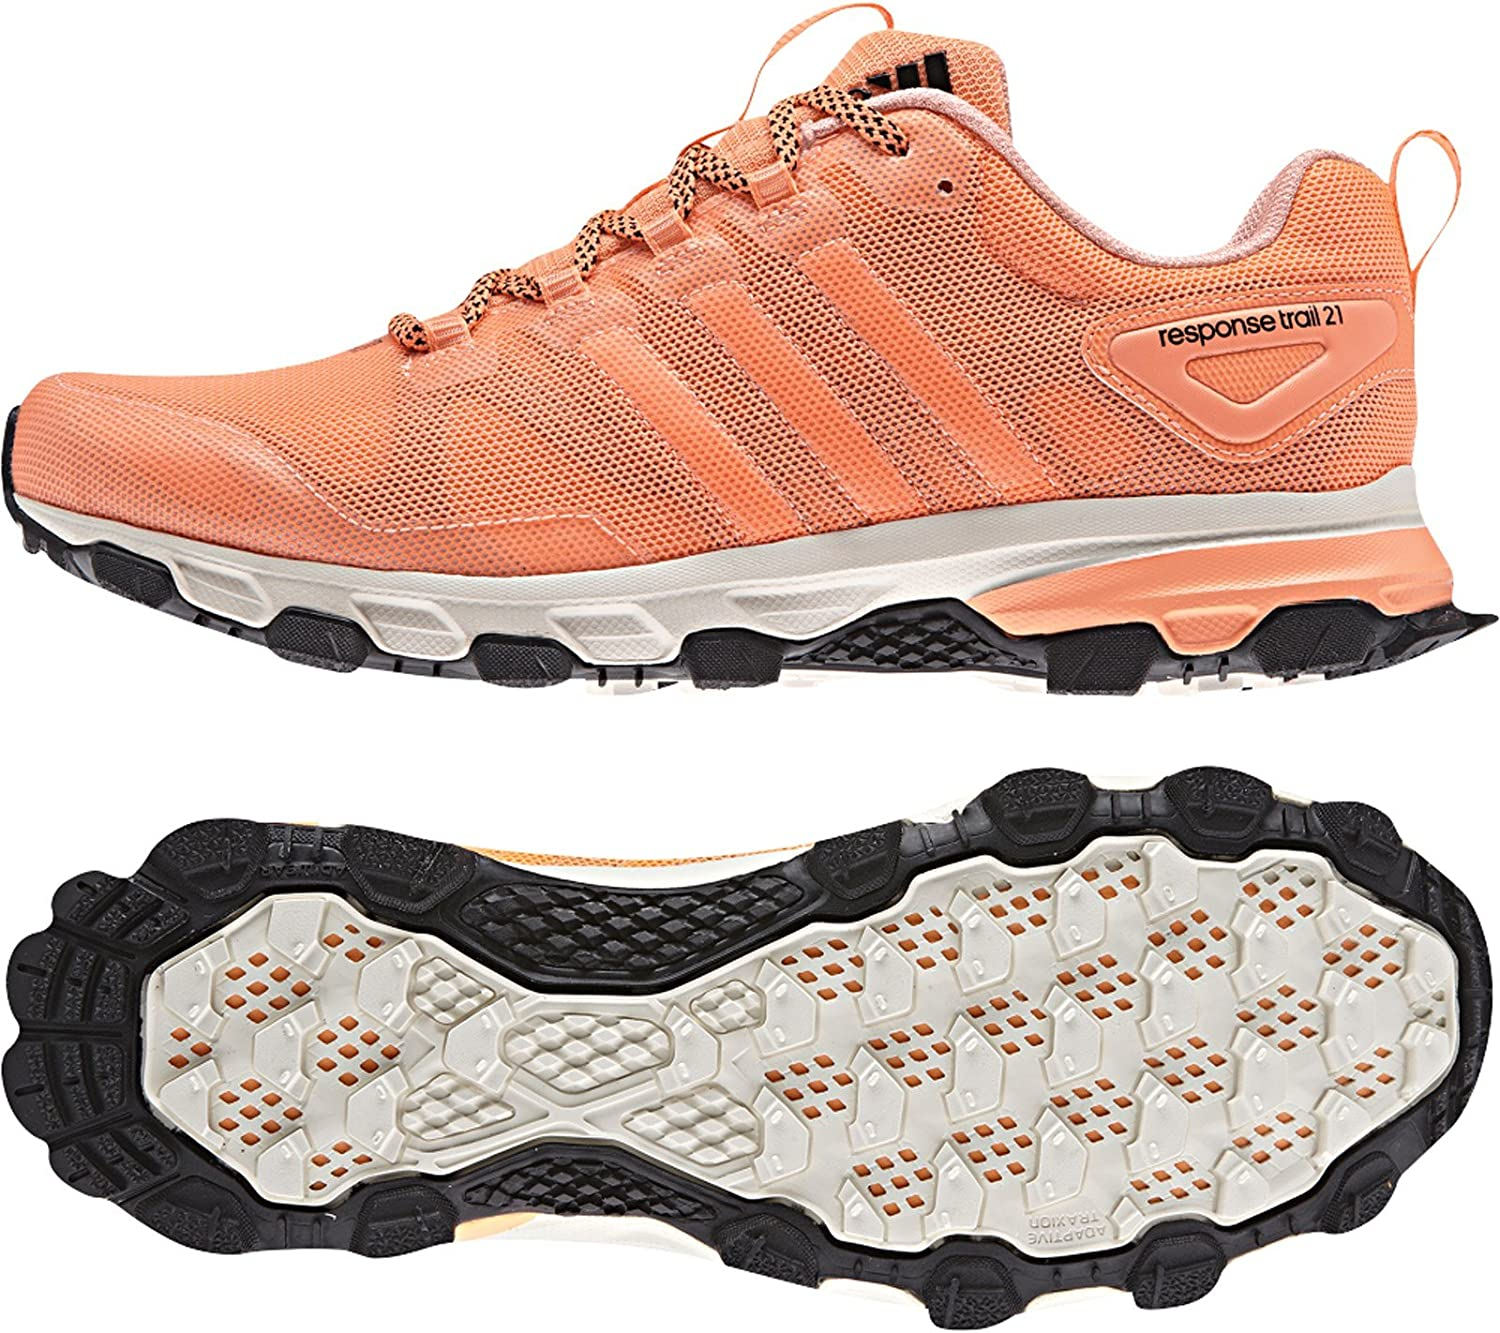 Adidas Outdoor Women's Response Trail 21 W Sneakers